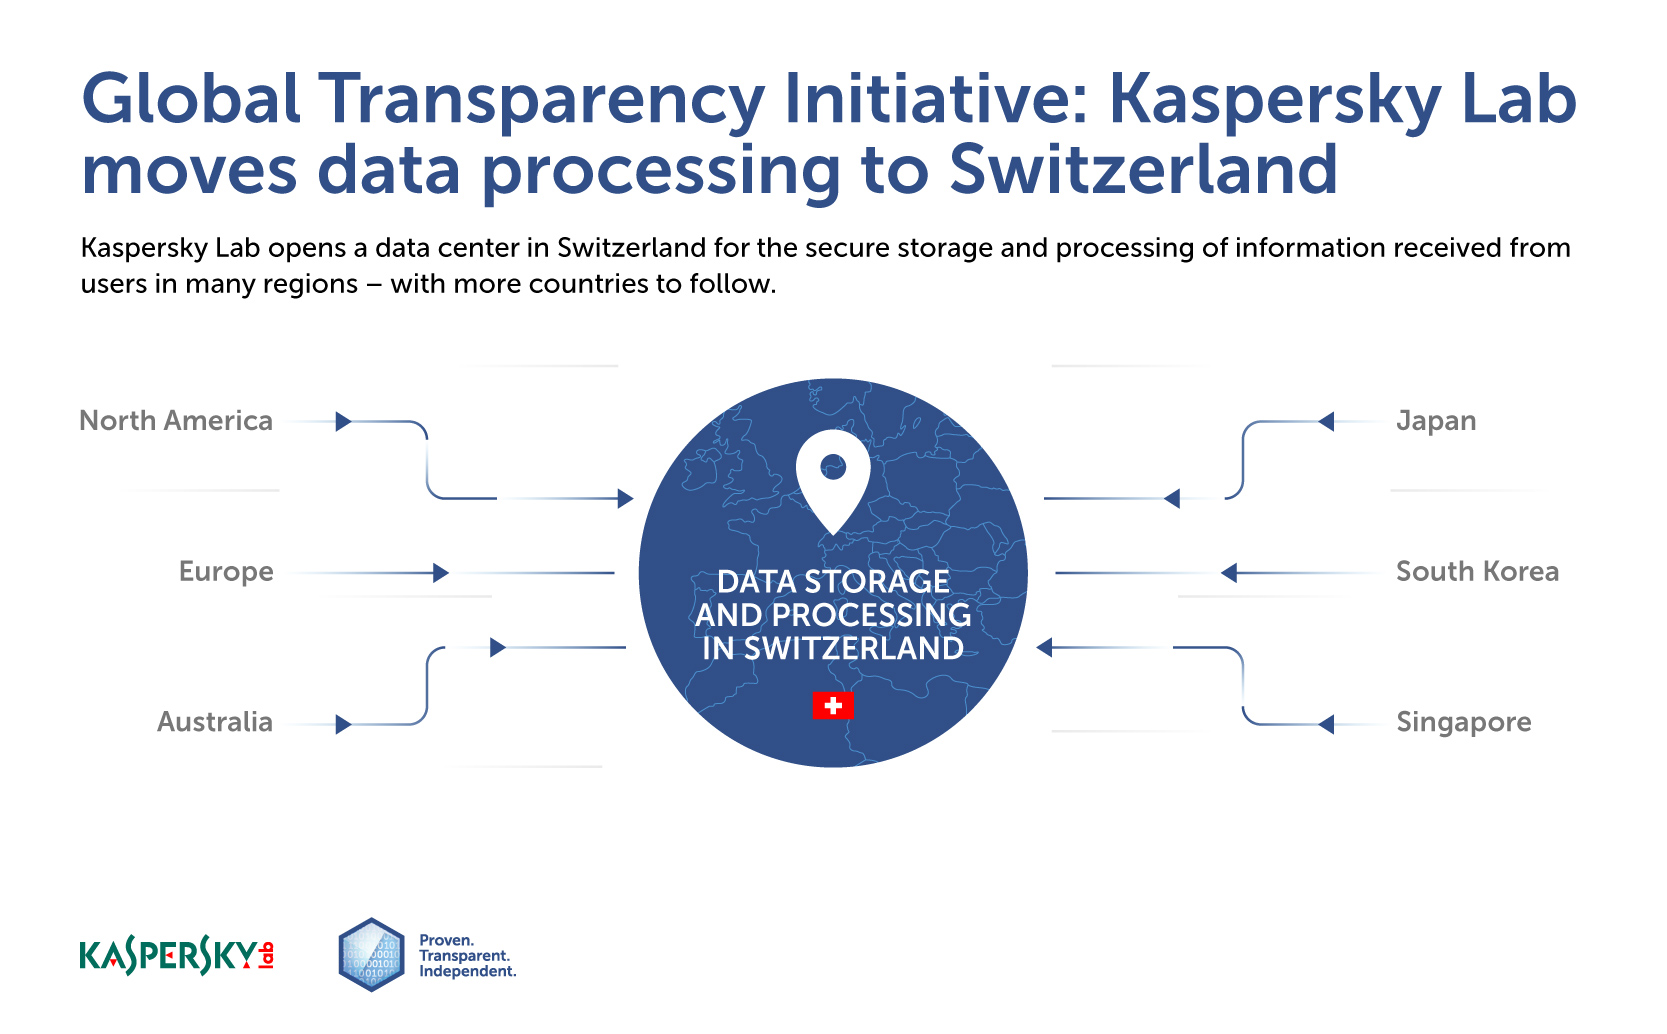 Kaspersky Lab moves data processing to Switzerland